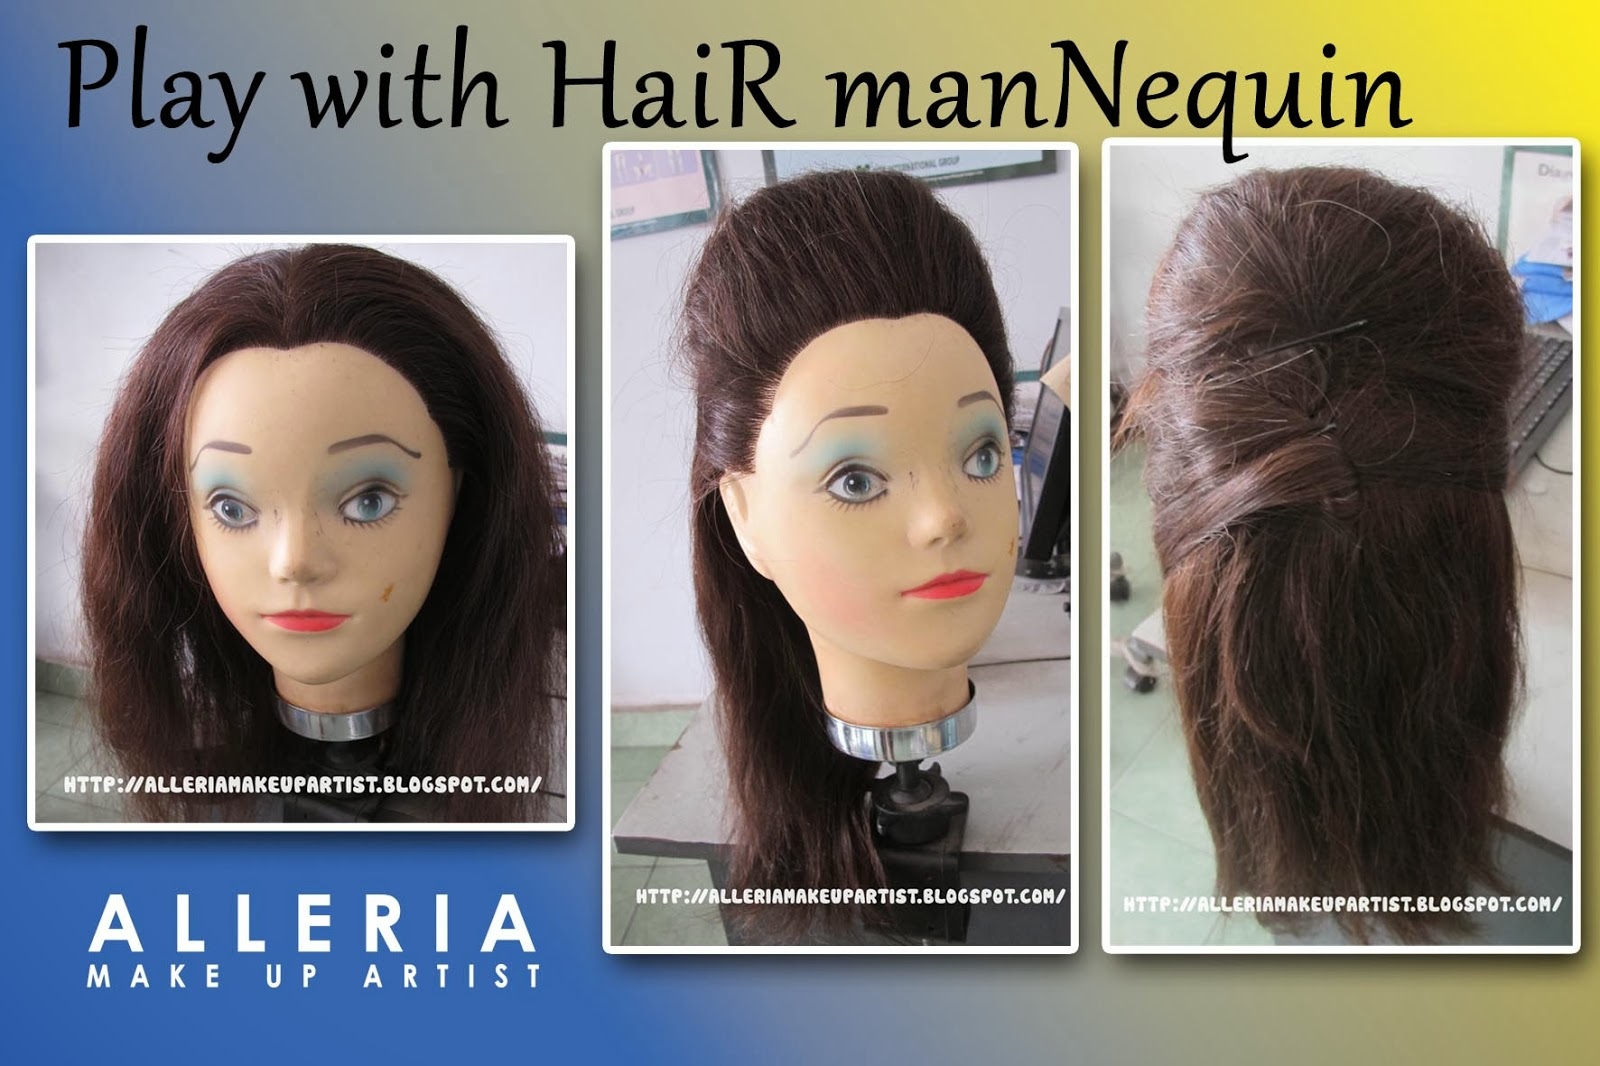 PLAY WITH HAIR MANNEQUIN | alleriamakeupartist